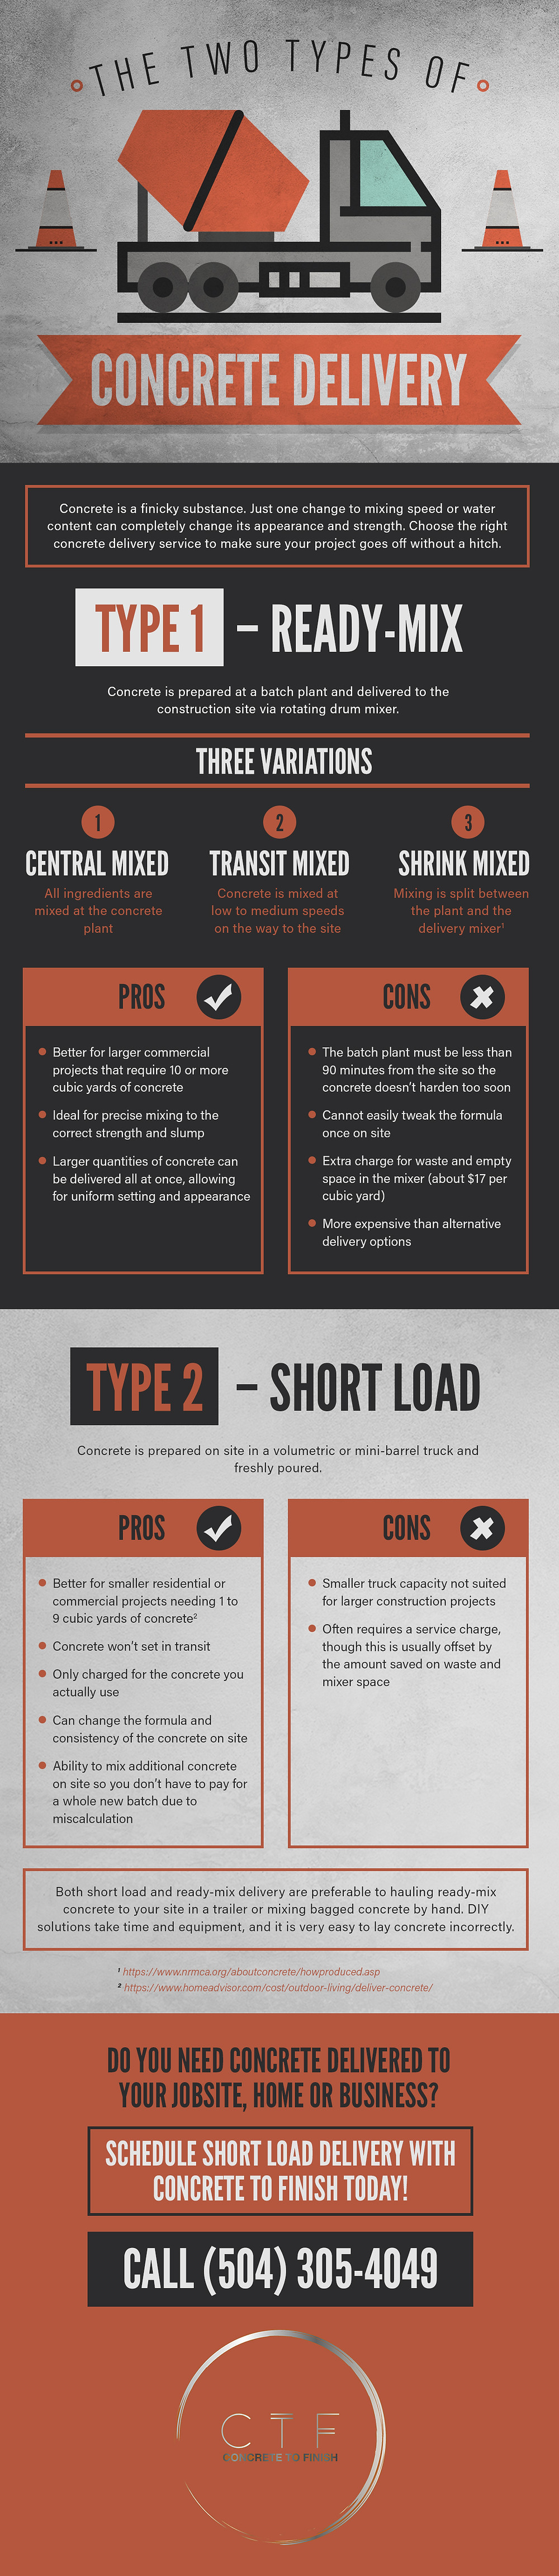 Ready Mix vs Short Load Delivery Services - Concrete to Finish - Infographic